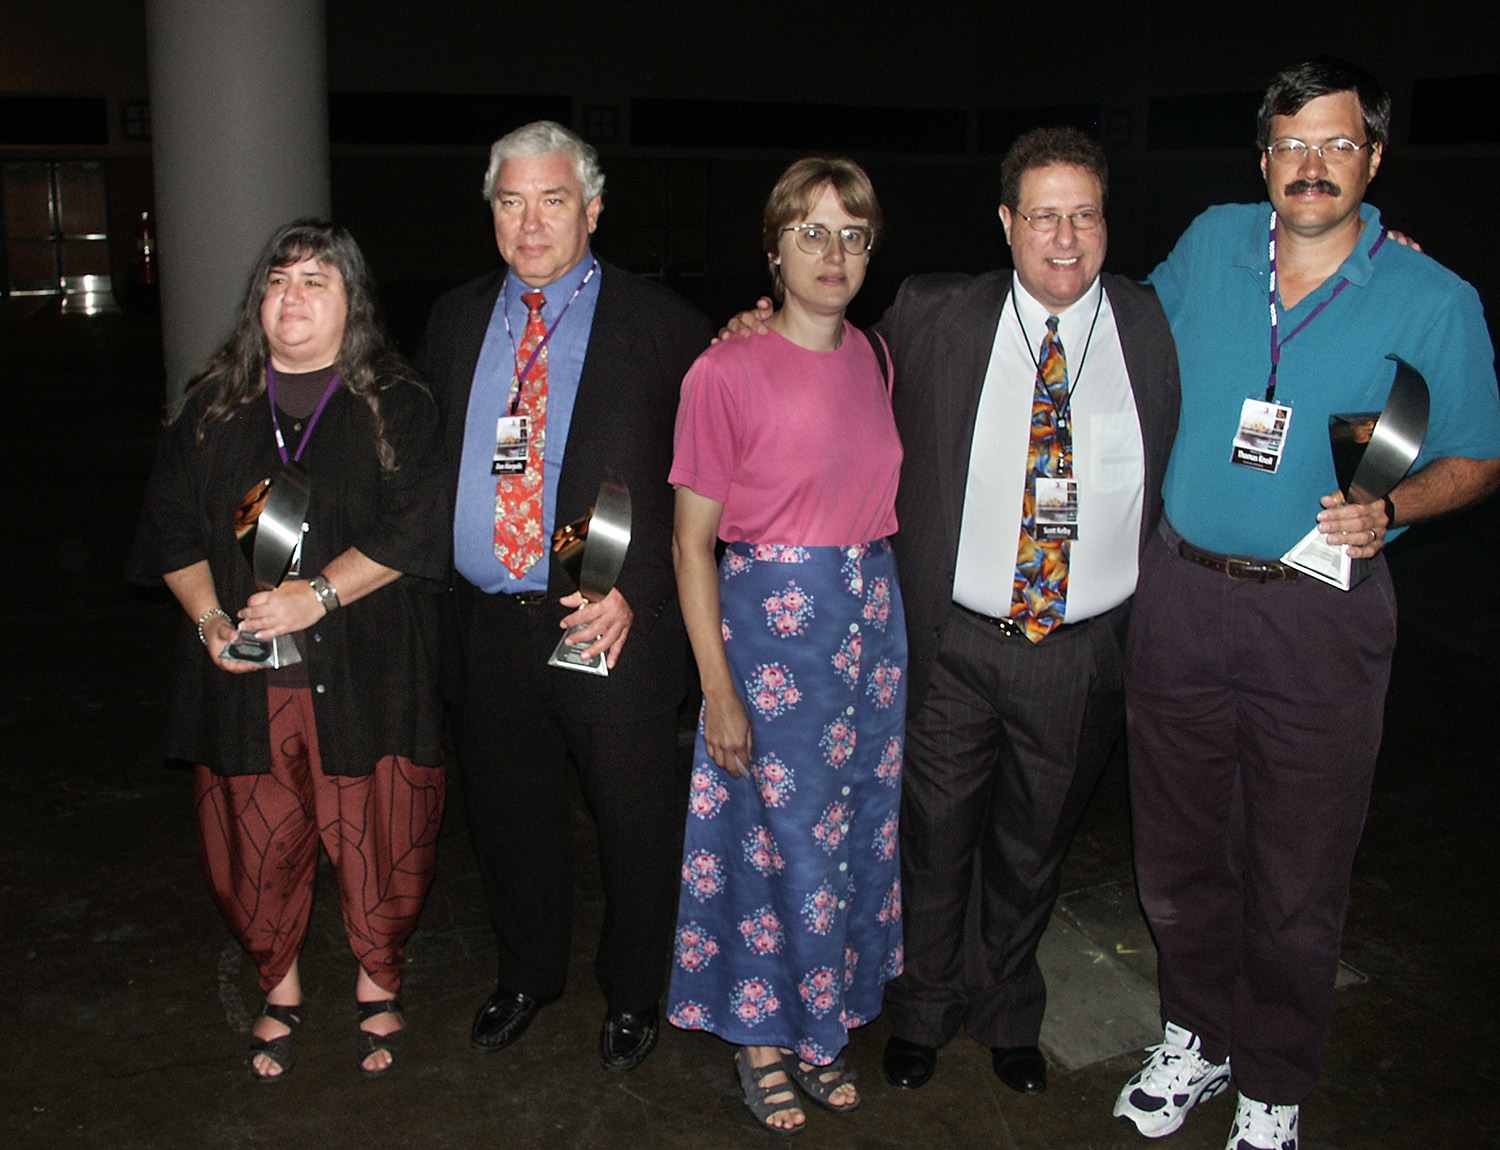 The three original Photoshop Hall of Famers: (L to R) Dianne Fenster, Dan Margulis (far right) Thomas Knoll